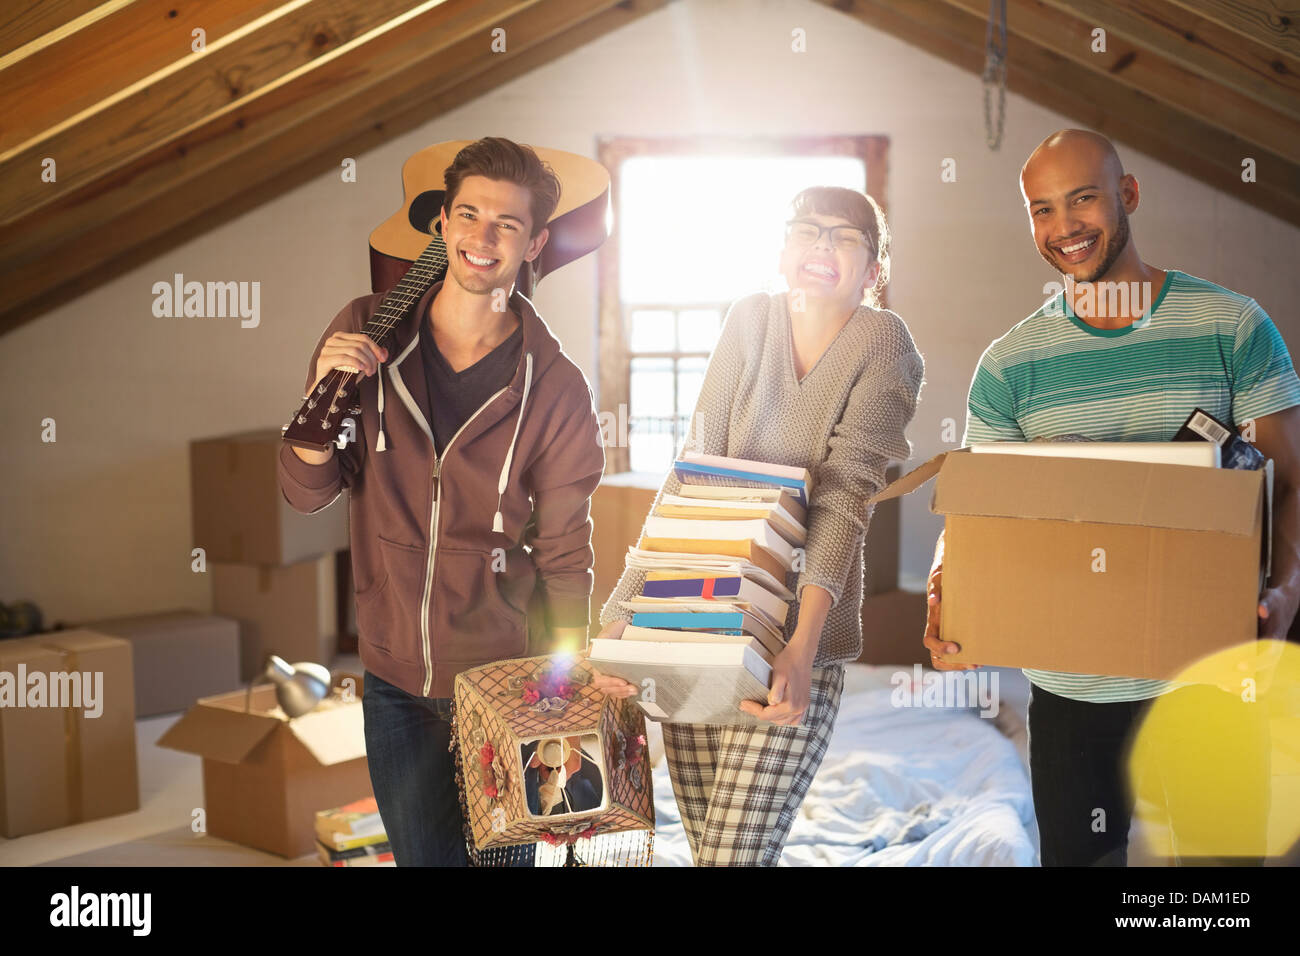 Friends unpacking boxes in attic Photo Stock